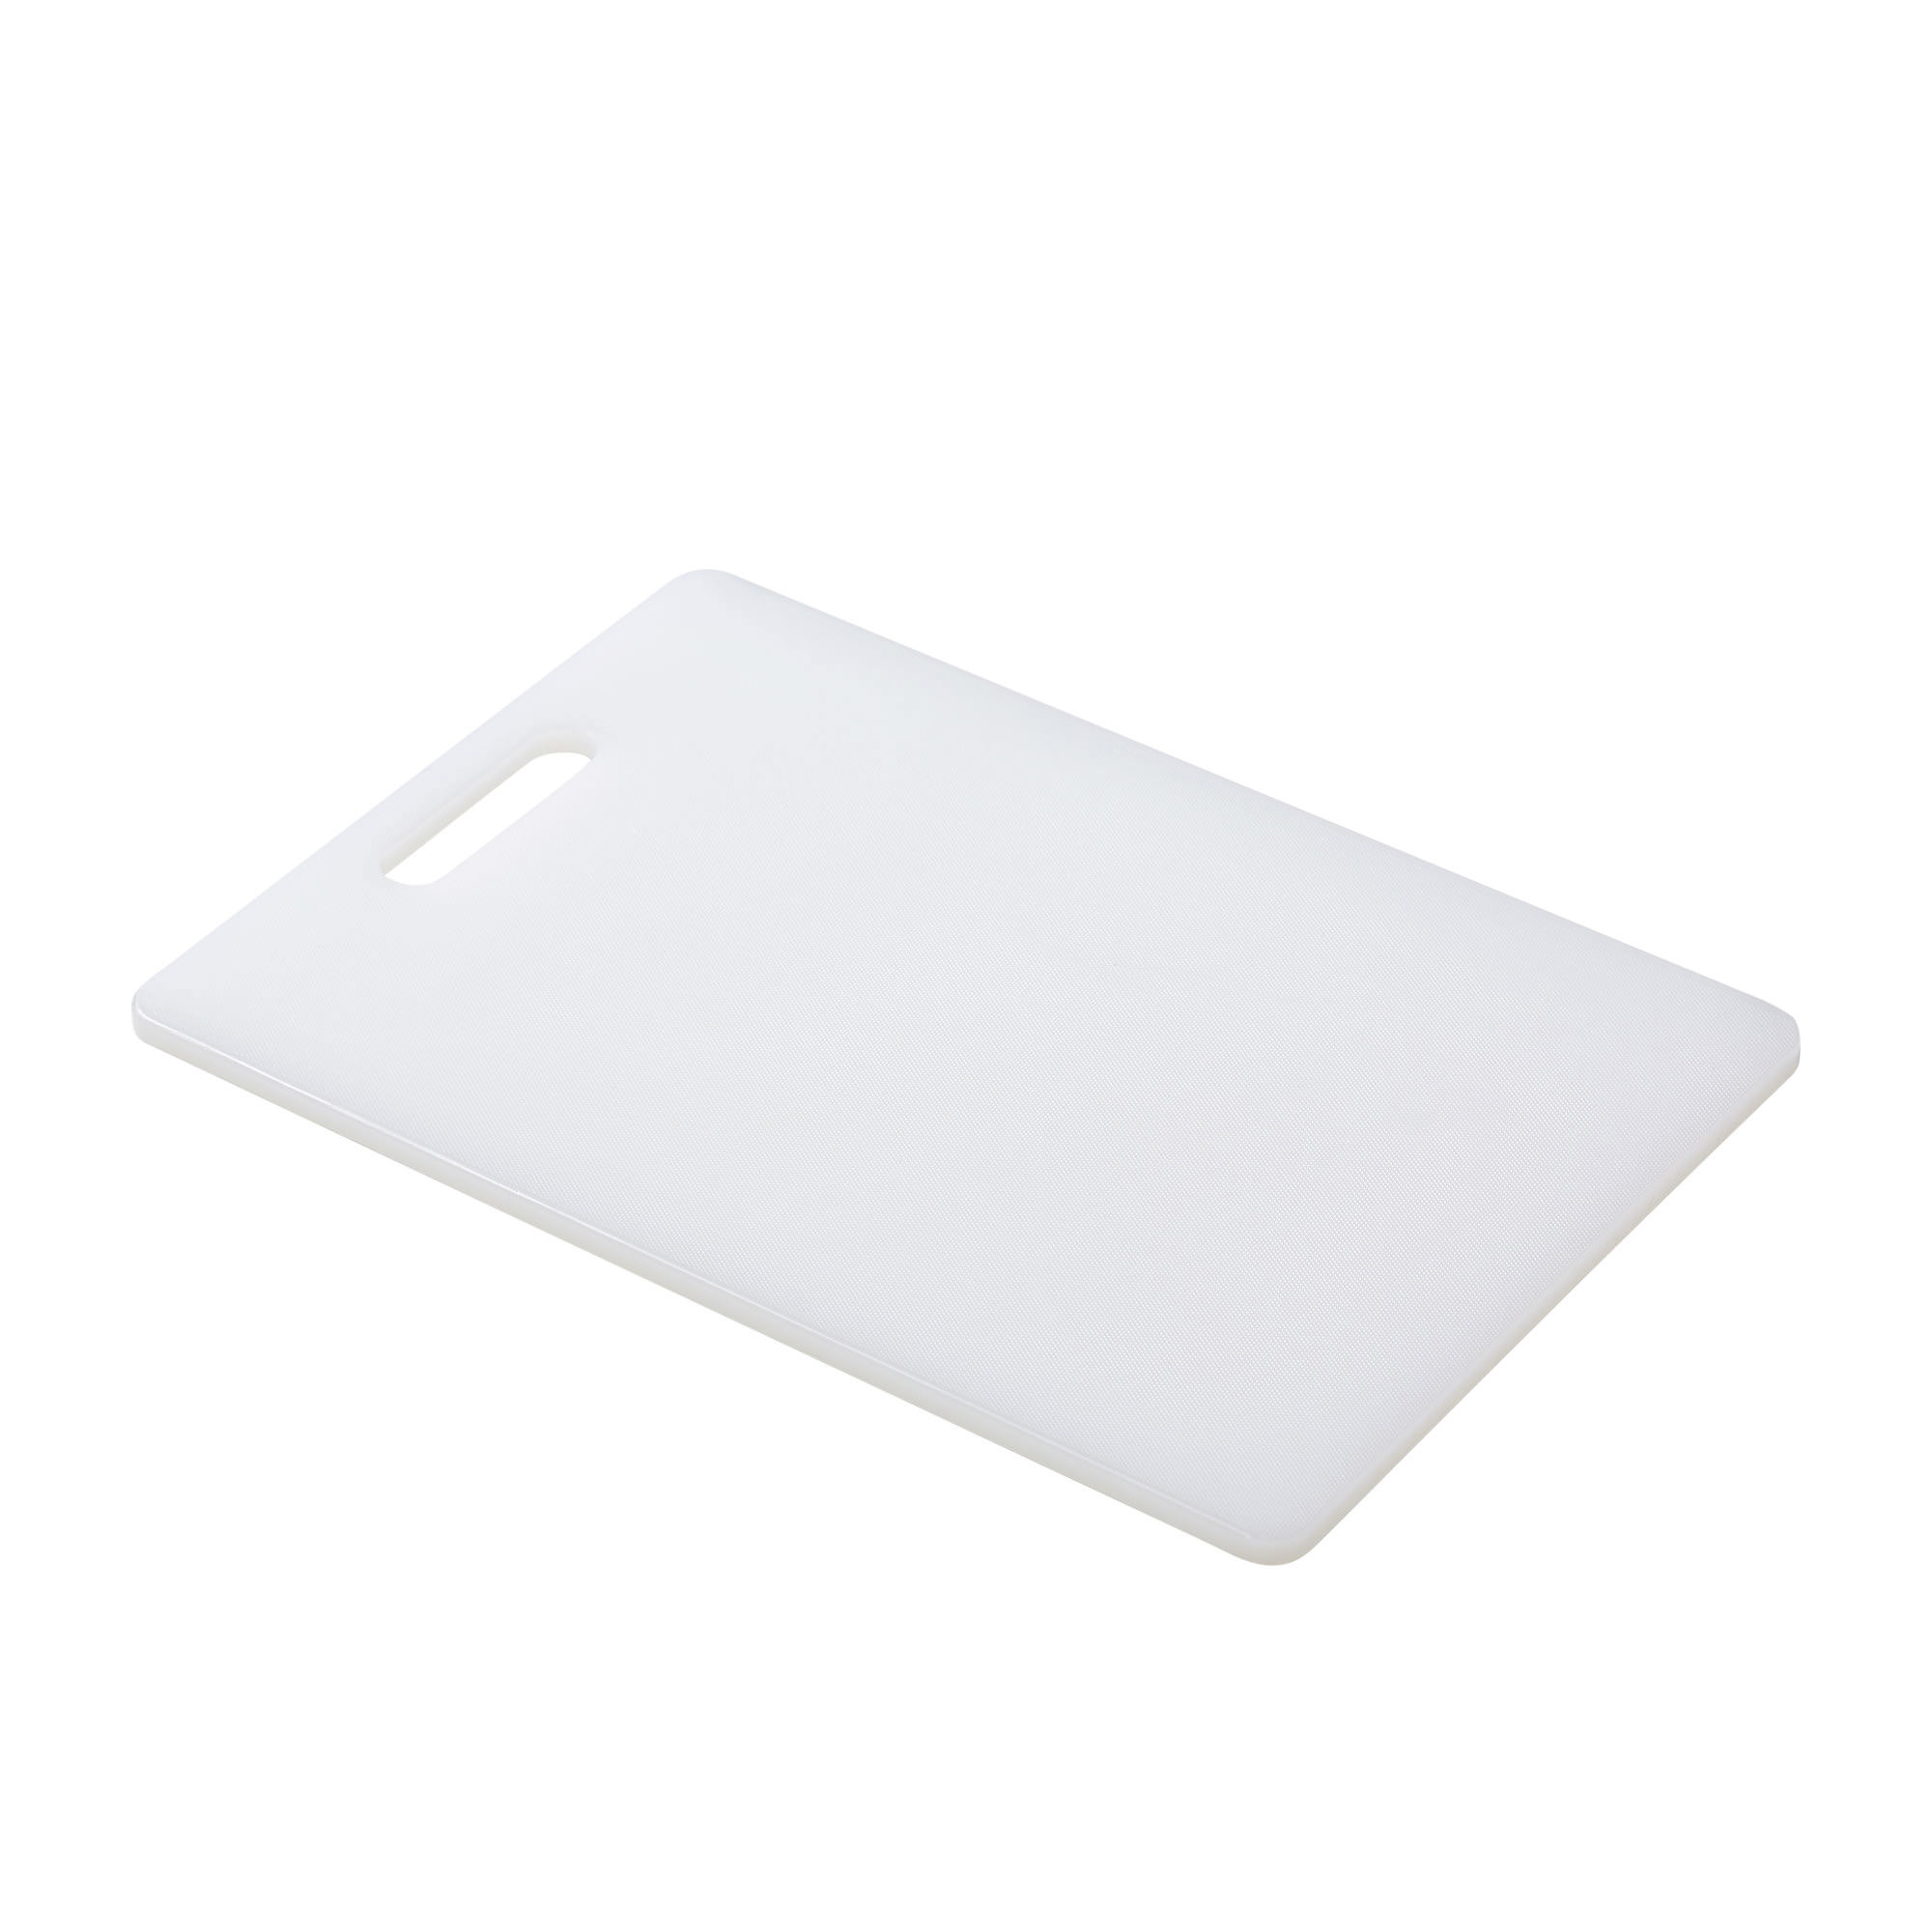 Kitchen Pro Classic Cutting Board 43x30x1.2cm White